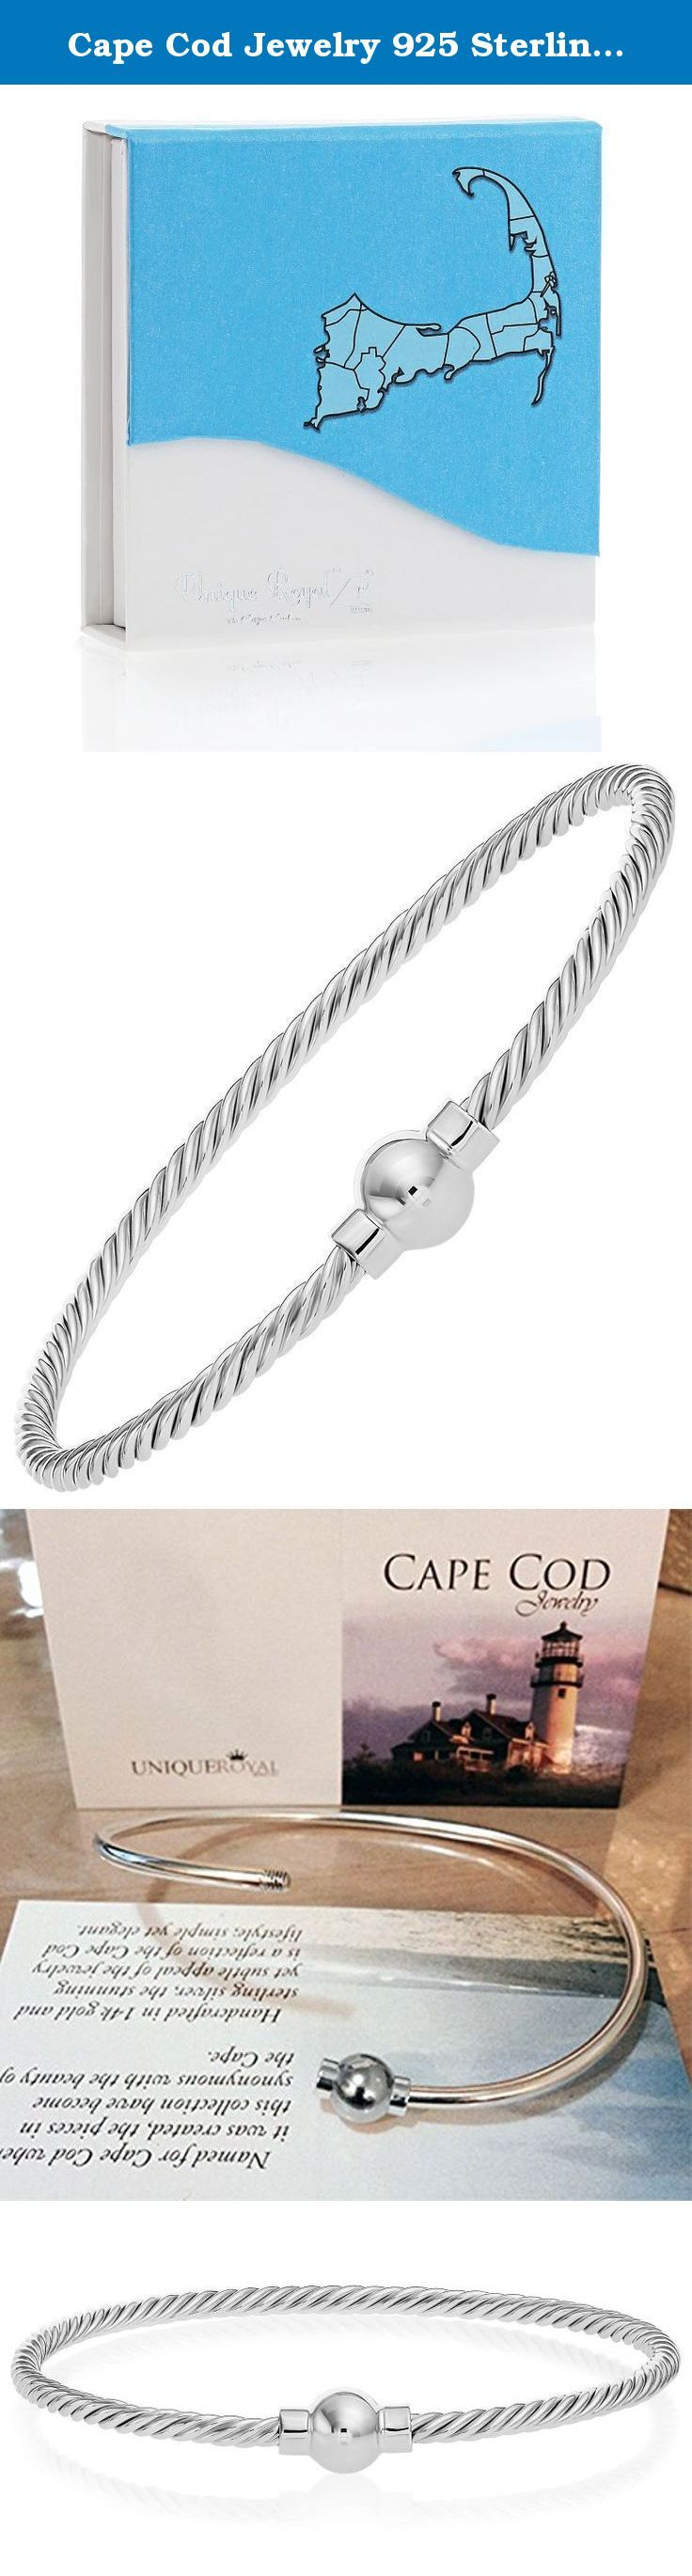 """Cape Cod Jewelry 925 Sterling Silver, Ball Screw Twisted Bangle Bracelet (Size 7""""). Named for Cape Cod where the style originated, Cape Cod Jewelry captures all the beauty of today's fashion. As part of the most popular styles of the Cape Cod Jewelry line this twisted bangle bracelet features a sterling silver ball with screw mechanism on a twisted sterling silver bangle. This bangle bracelet is specially shaped for comfort. Each of our jewelry items come in an adorable gift box for safe..."""